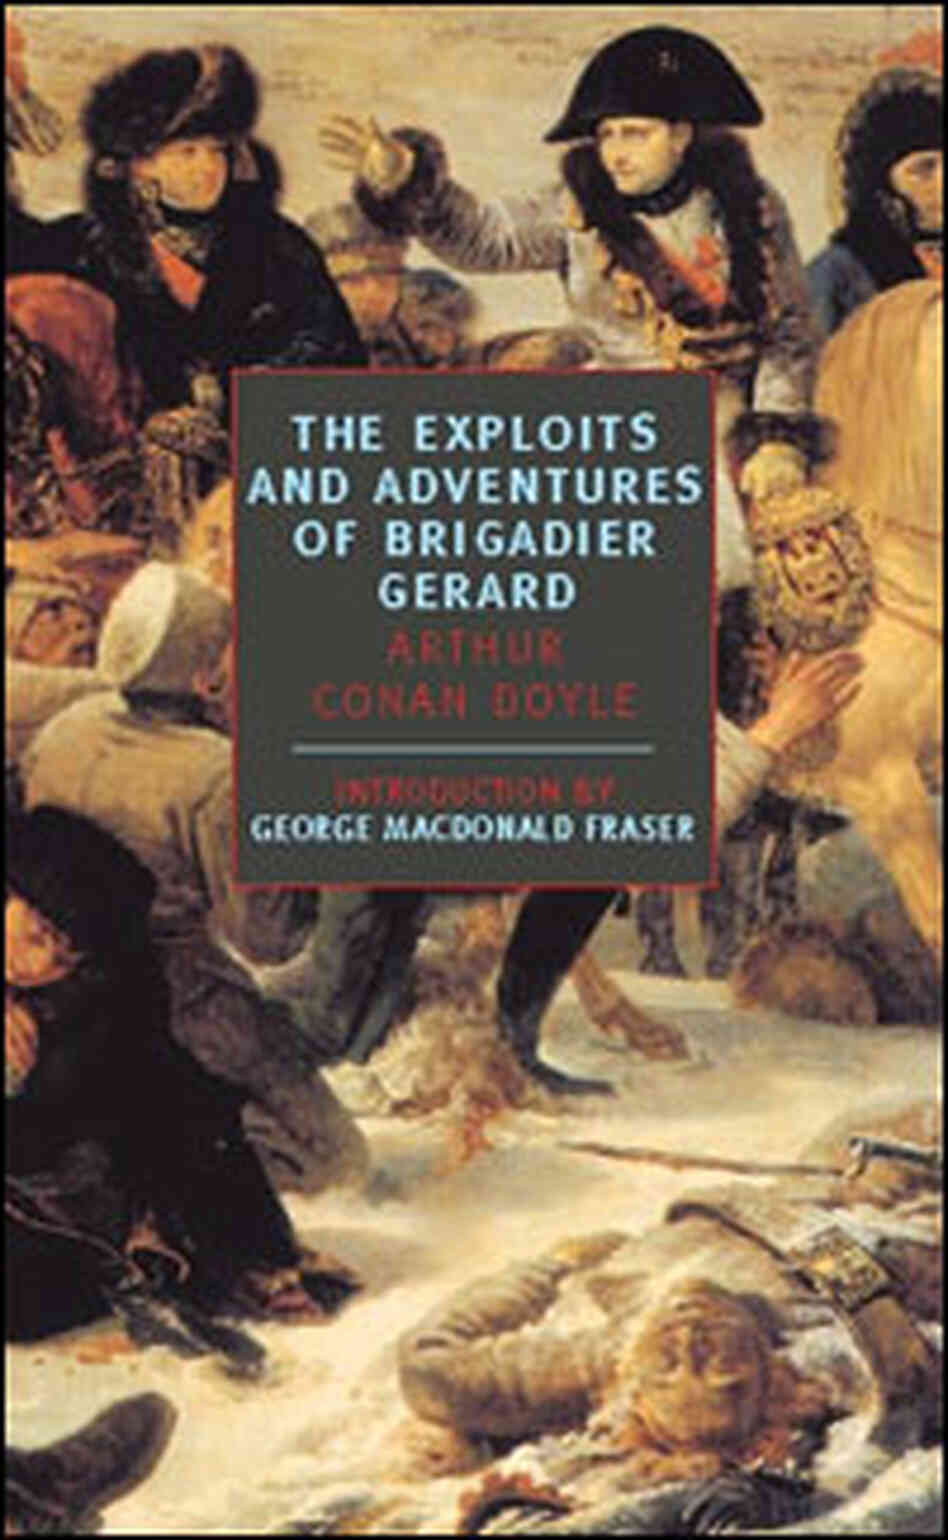 The Exploits and Adventures of Brigadier Gerard